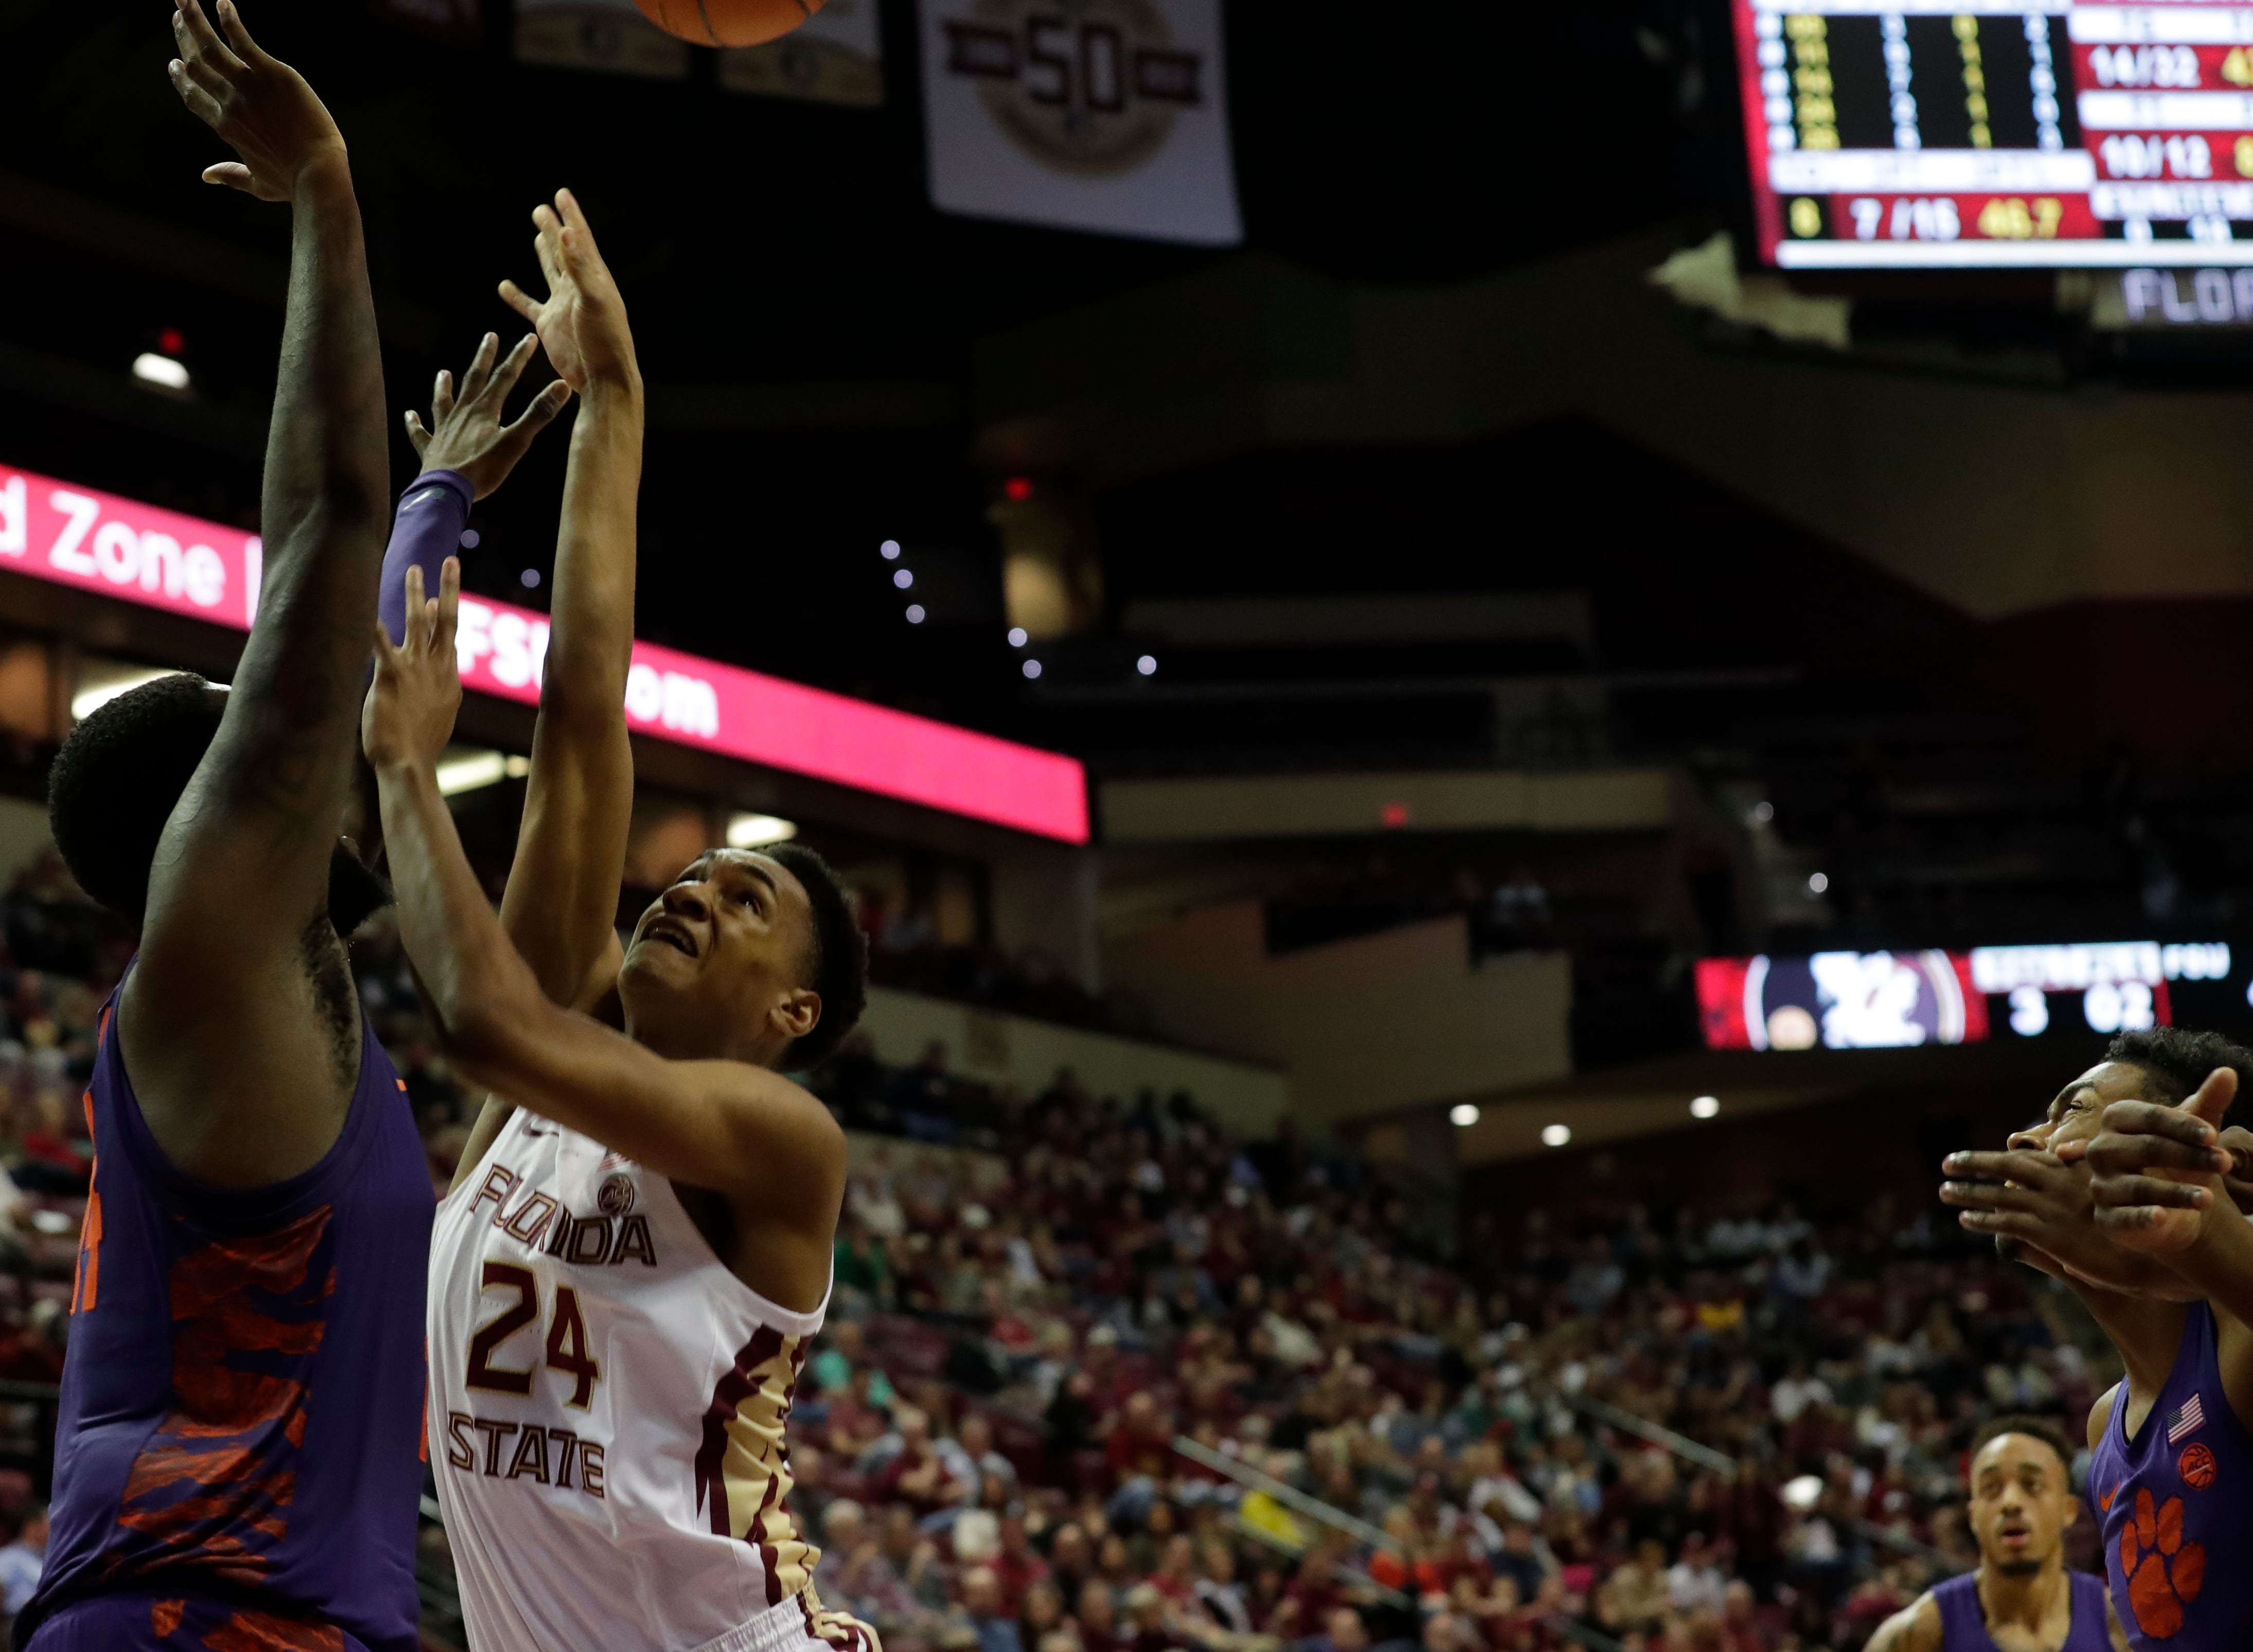 Florida State Seminoles guard Devin Vassell (24) fights for the rebound with a defender. The Florida State Seminoles face off against the Clemson Tigers at the Tucker Civic Center, Tuesday, Jan. 22, 2019.